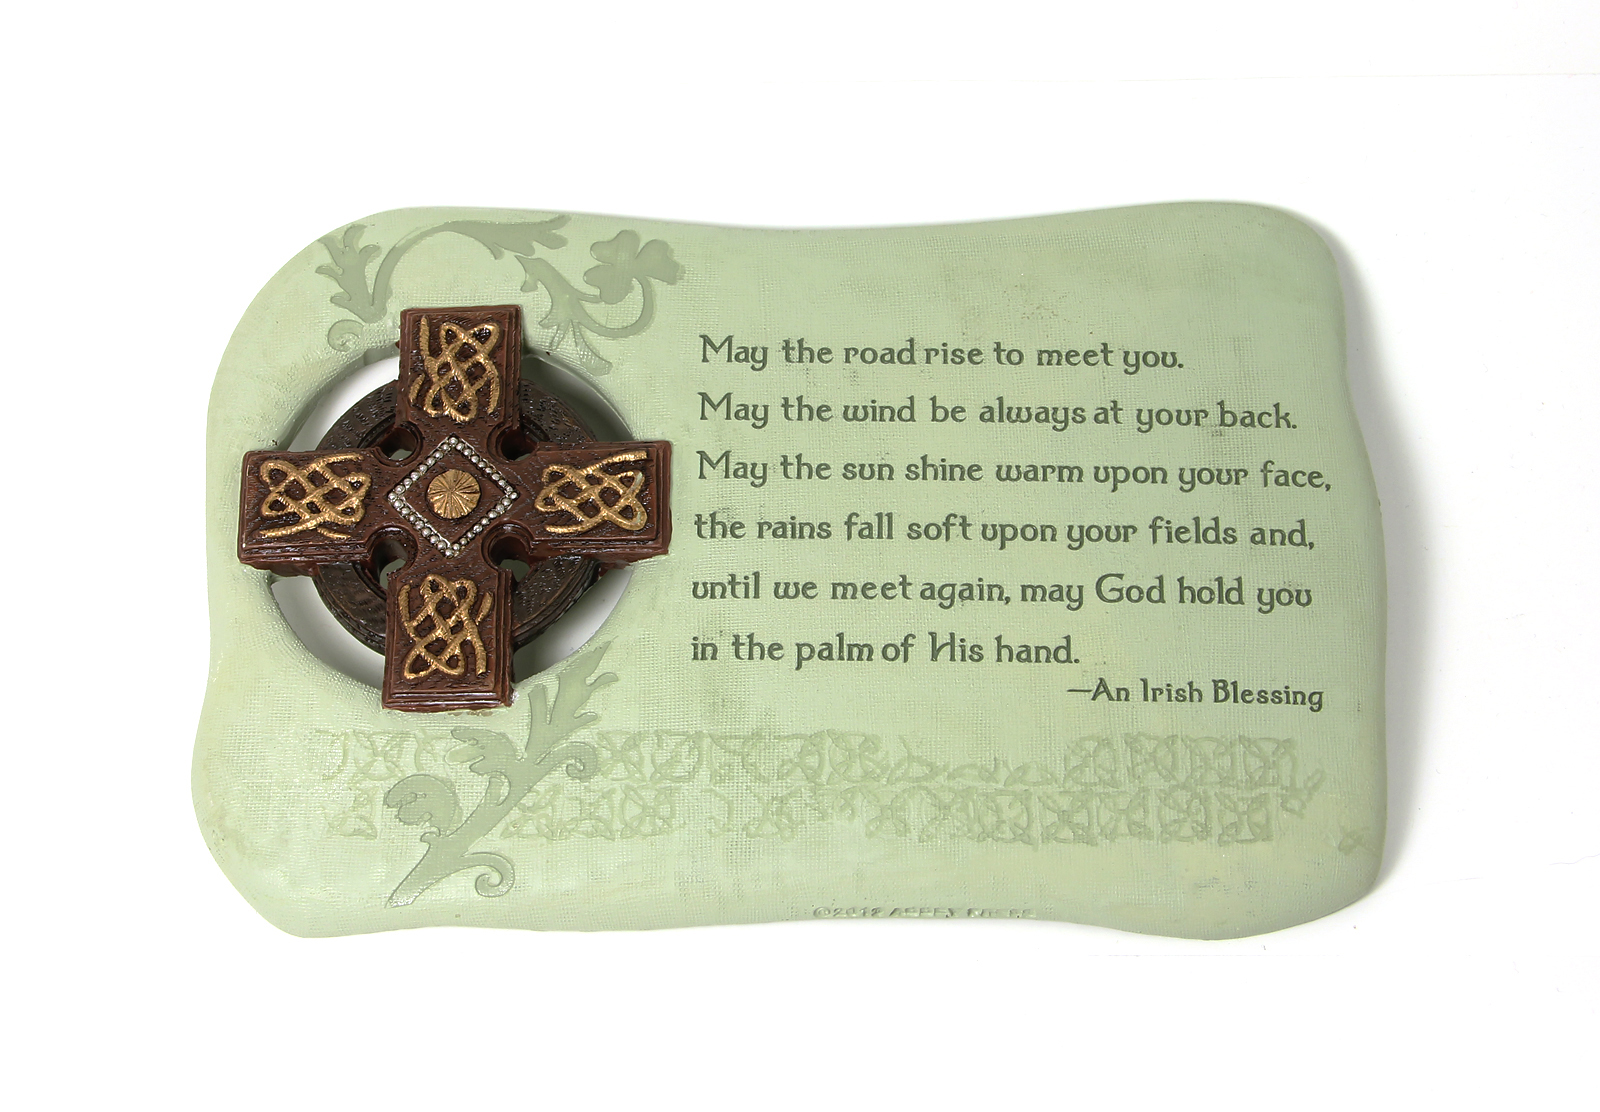 Irish Home Blessings Wedding And Sayings